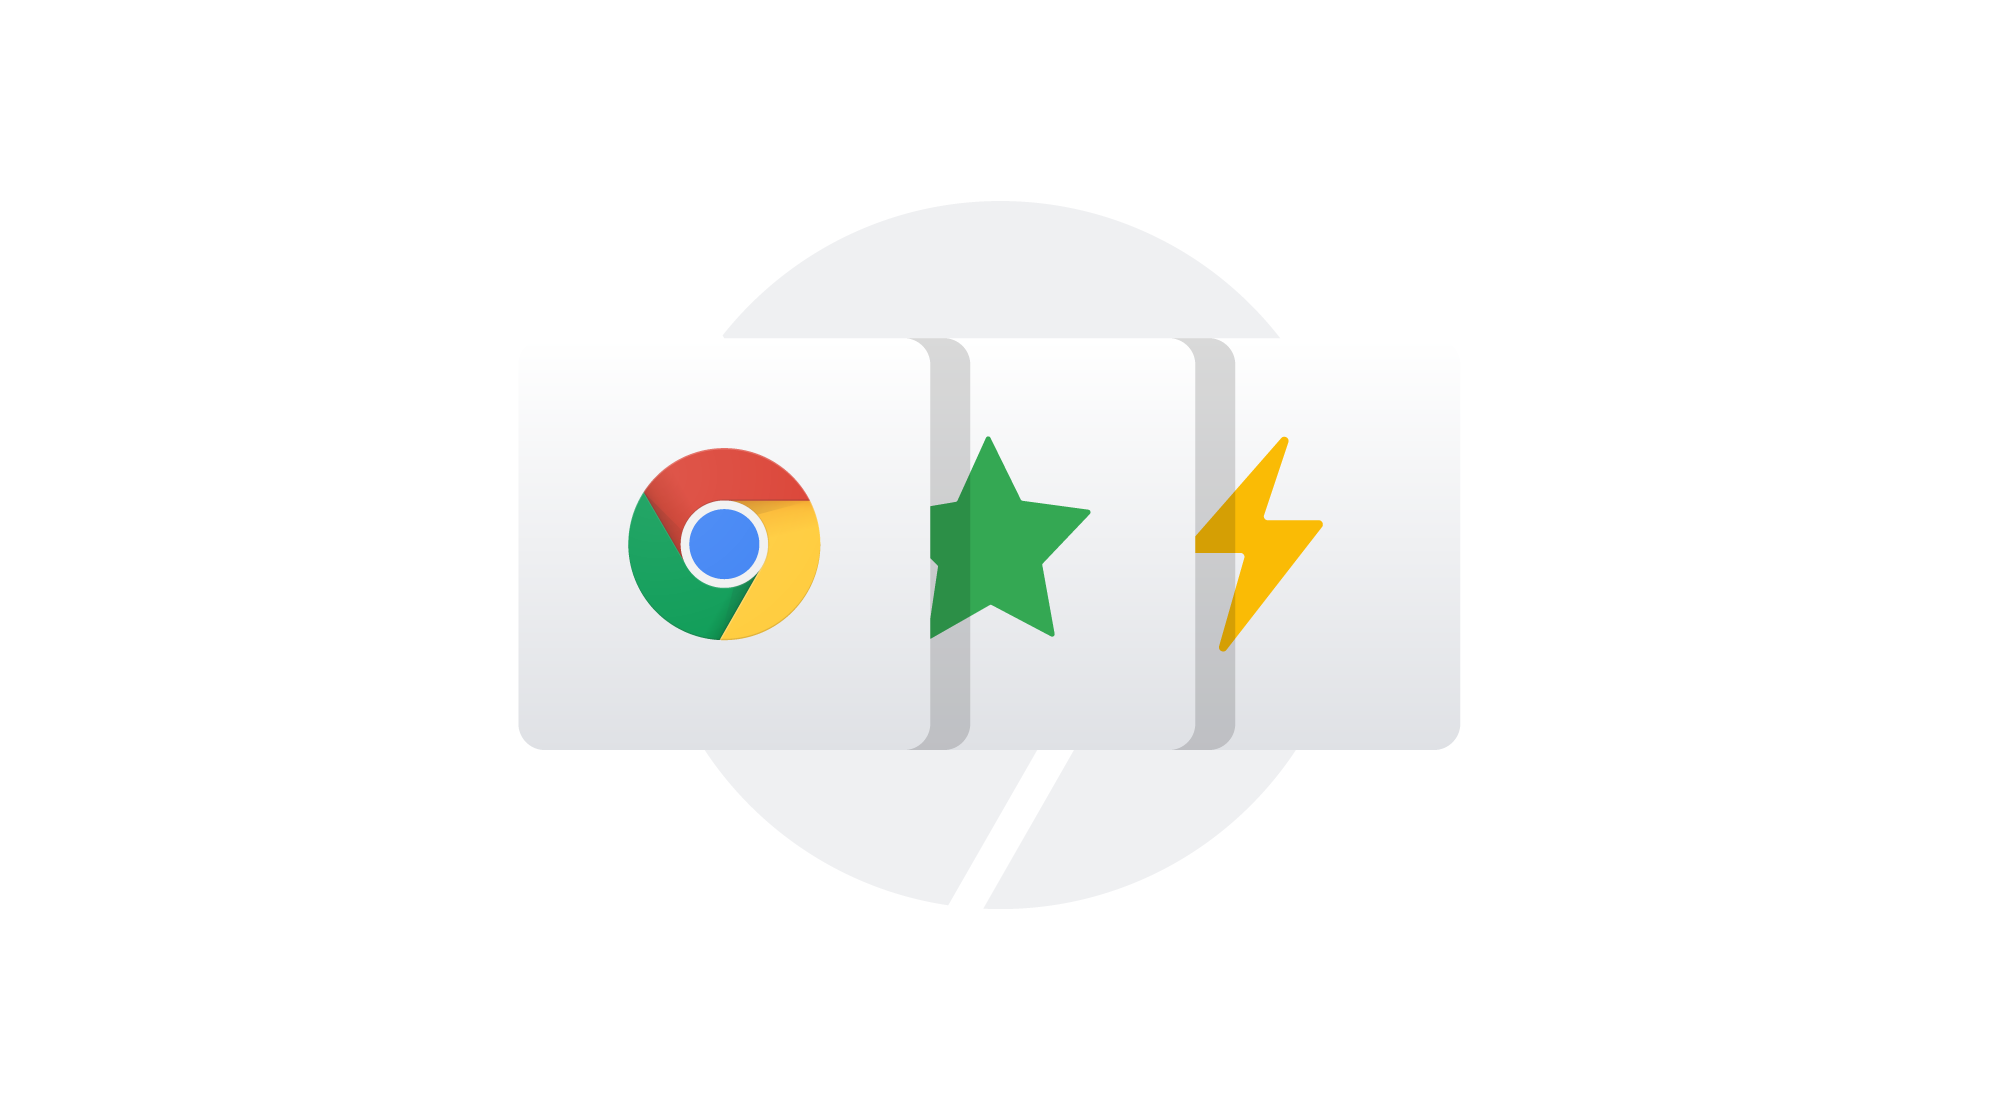 5 Chromebook tips for increasing productivity at work